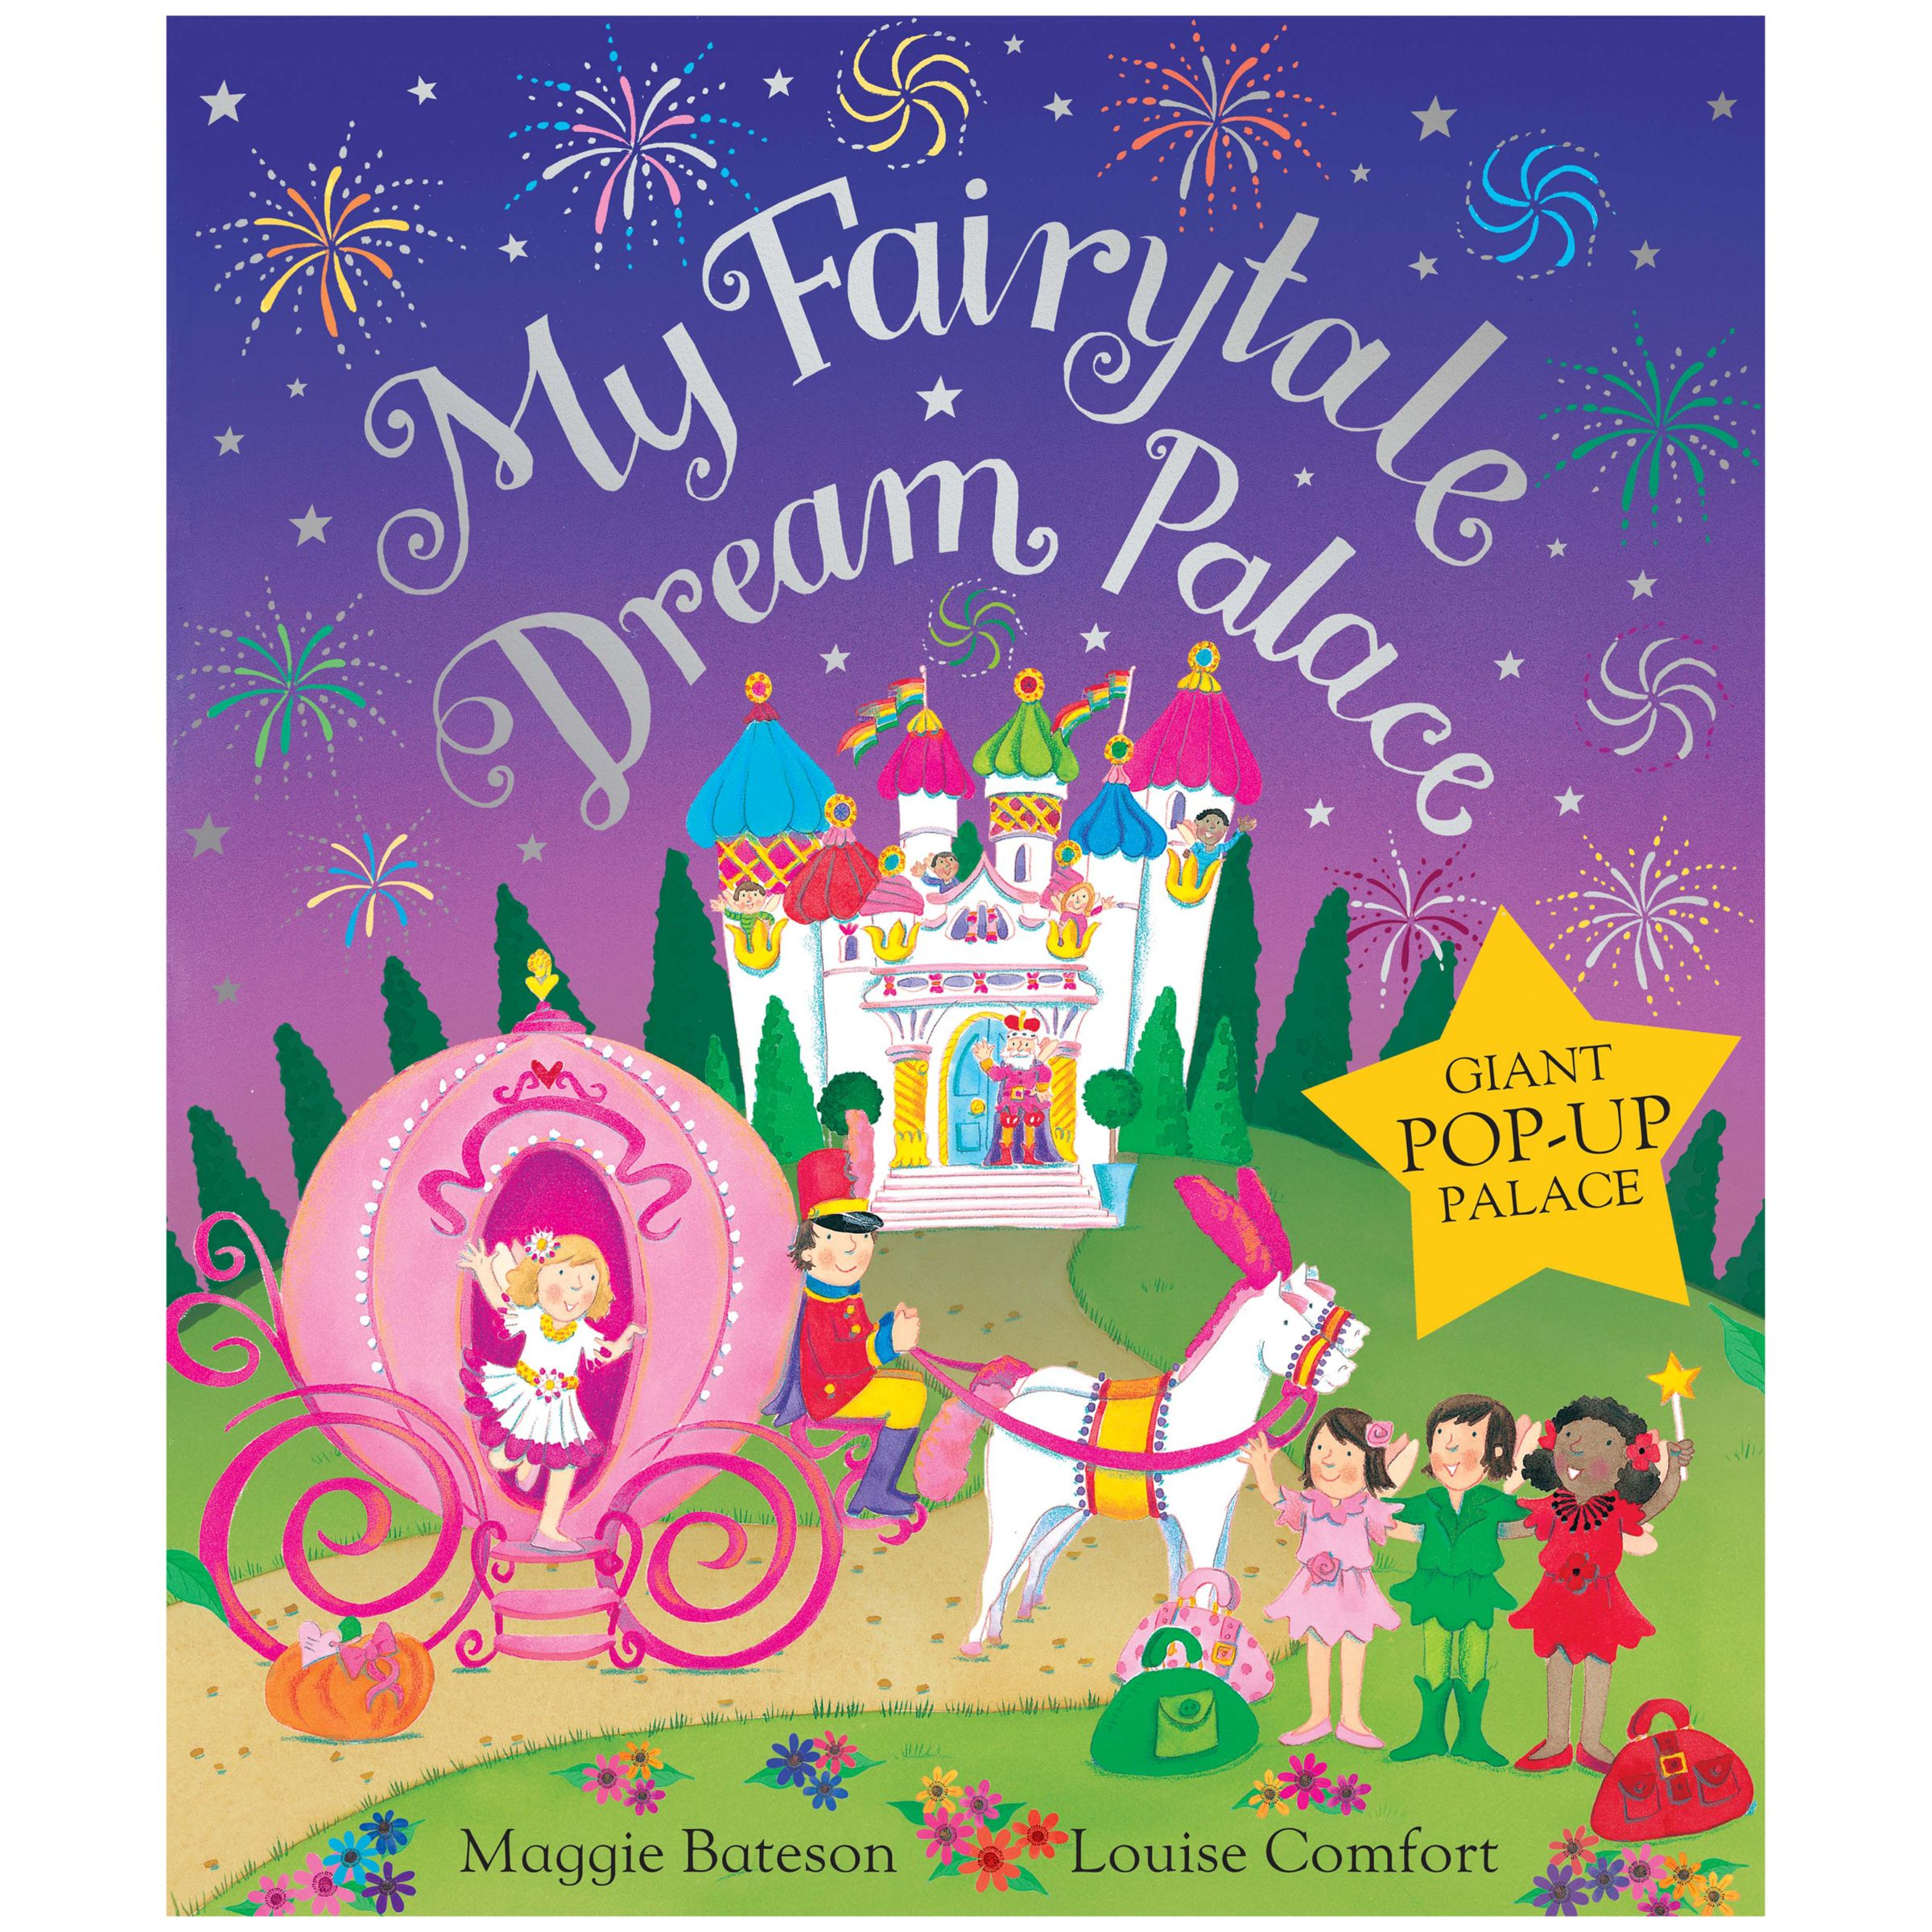 My Fairytale Dream Palace Pop-Up Book